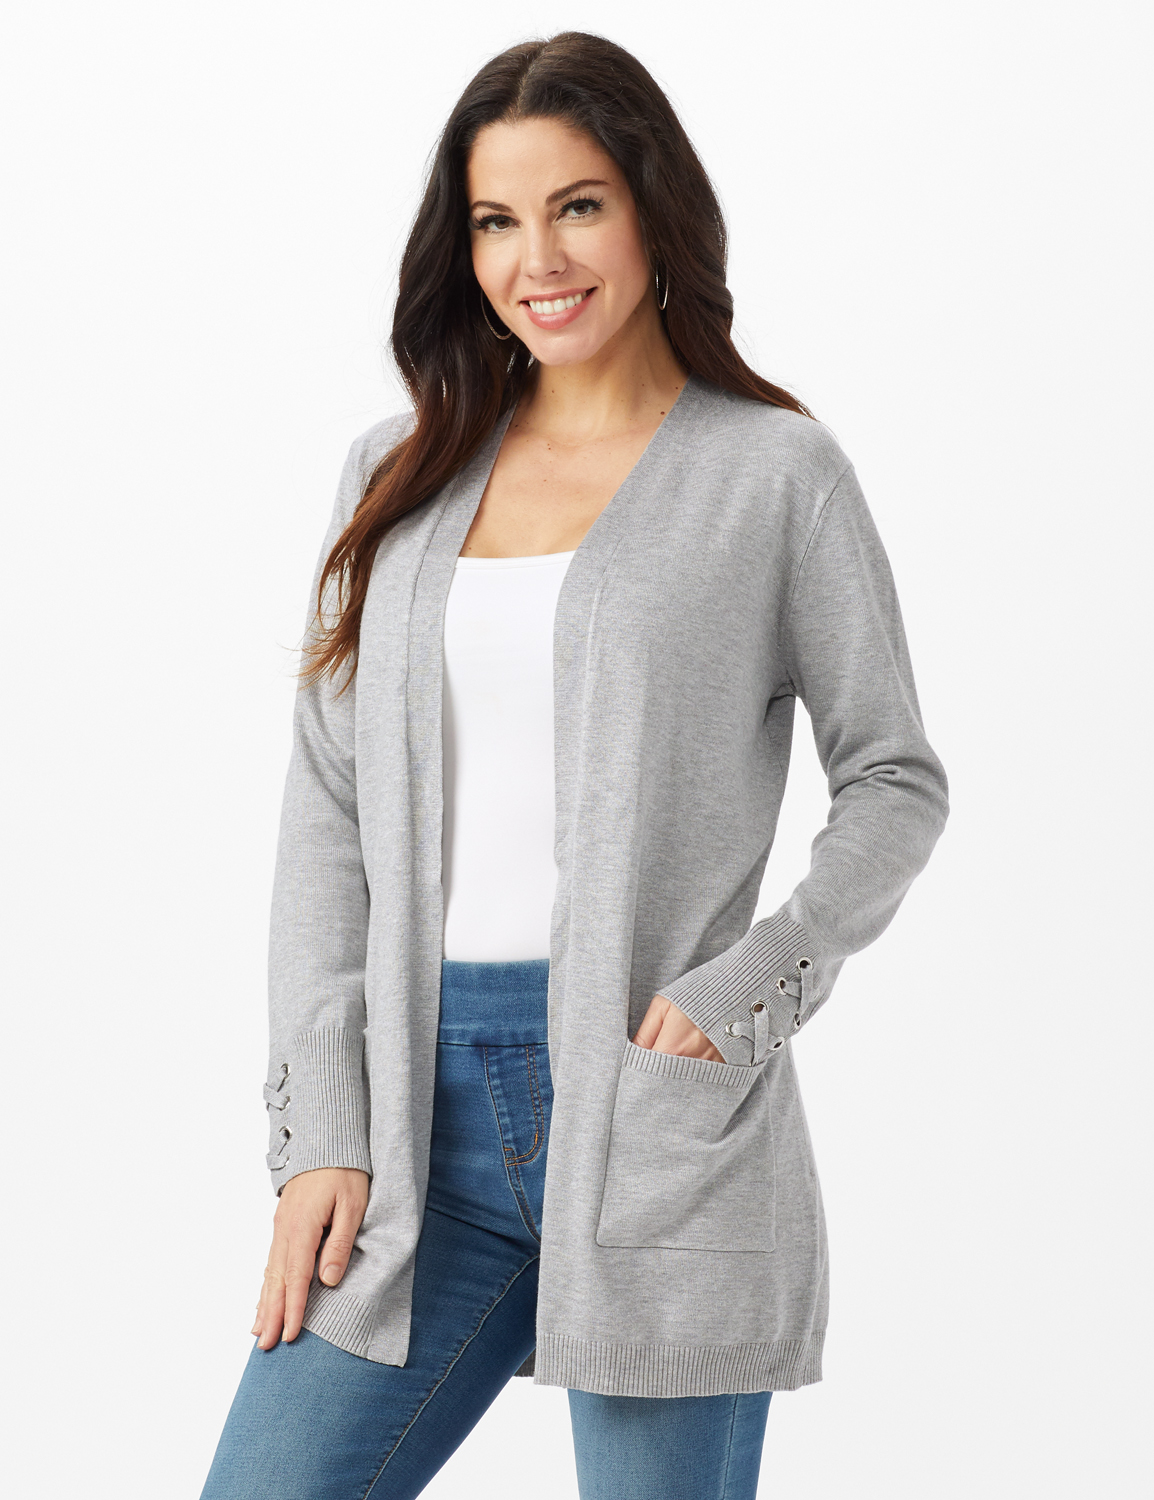 Grommet Lace-Up Trim Open Cardigan -Light Heather Grey - Front